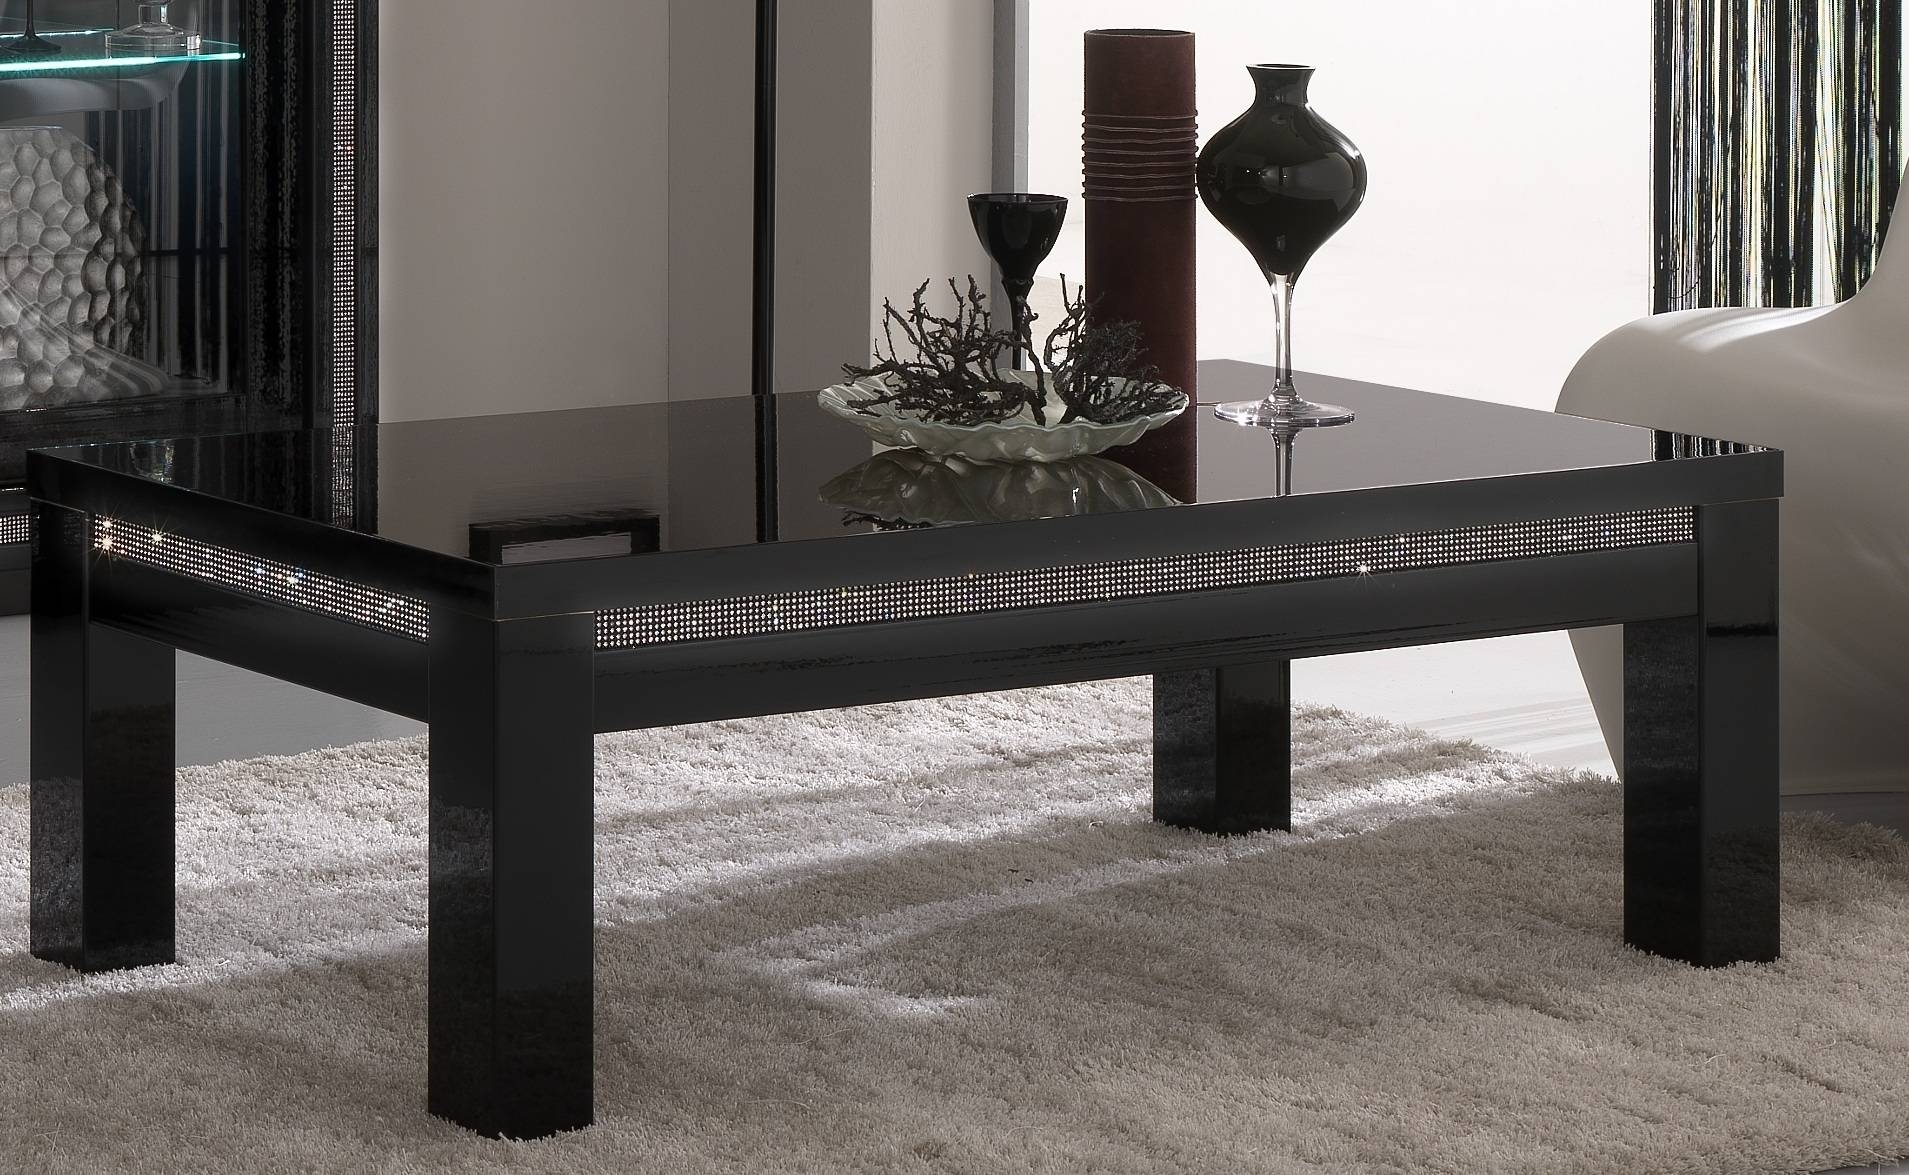 15 ideas of modern black glass coffee table Black coffee table with glass